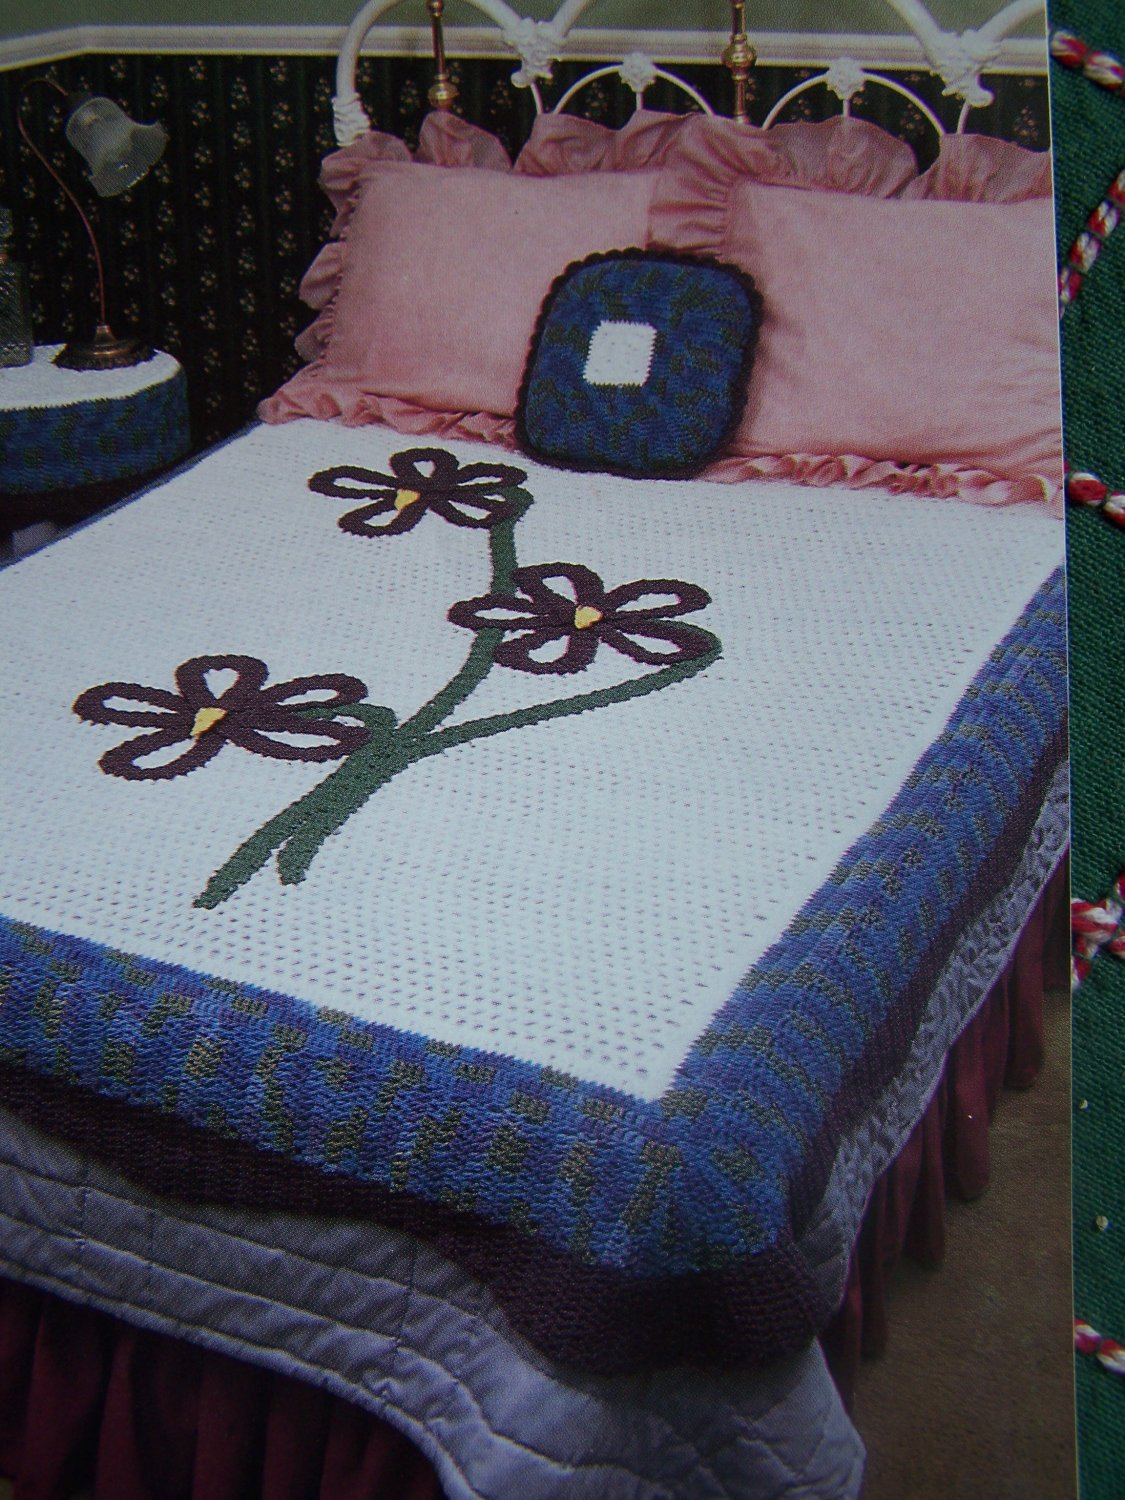 0 S&H USA Vintage Crochet Patterns Annie's Attic Violet Bedroom Toppers Afghan Pillow Table